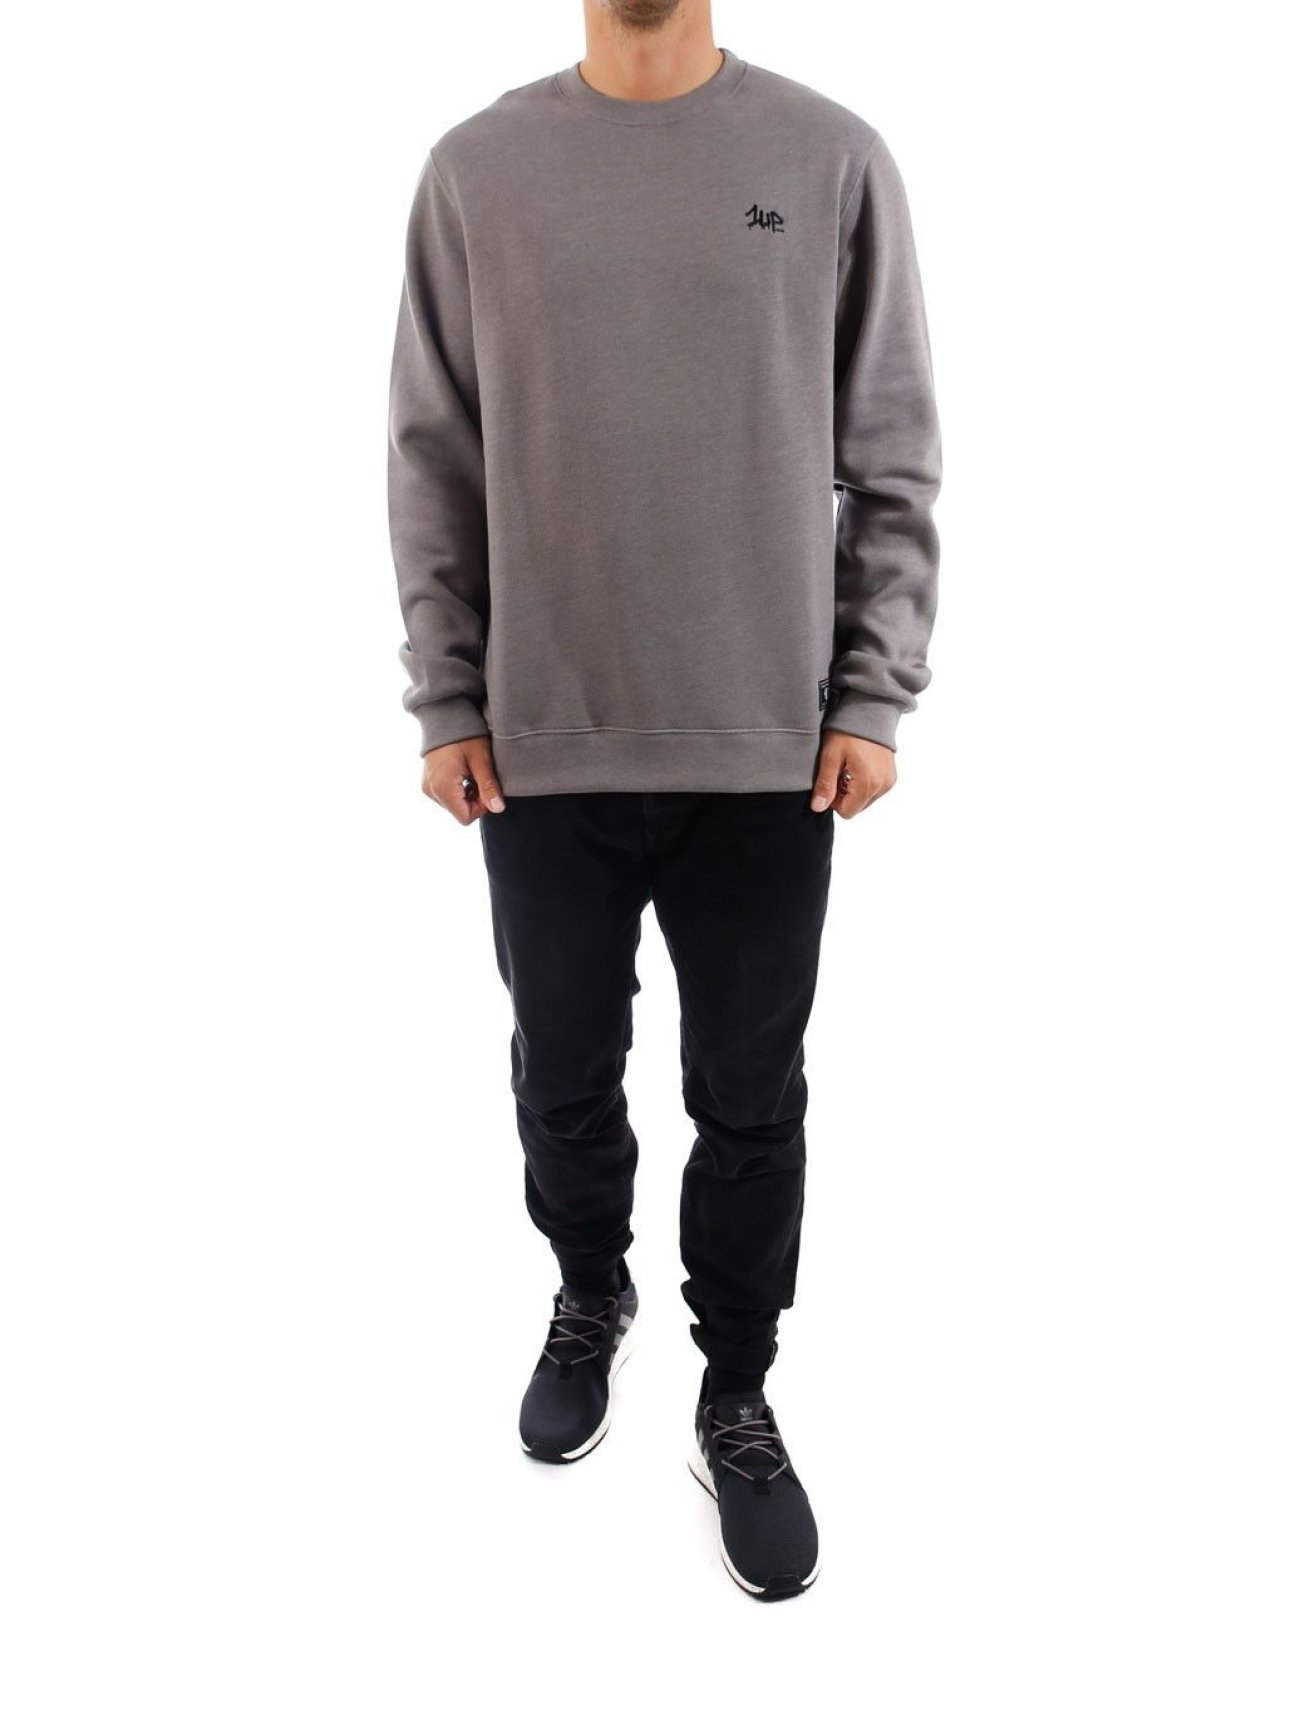 1UP |   gris Homme Sweat & Pull  555499| Homme Hauts